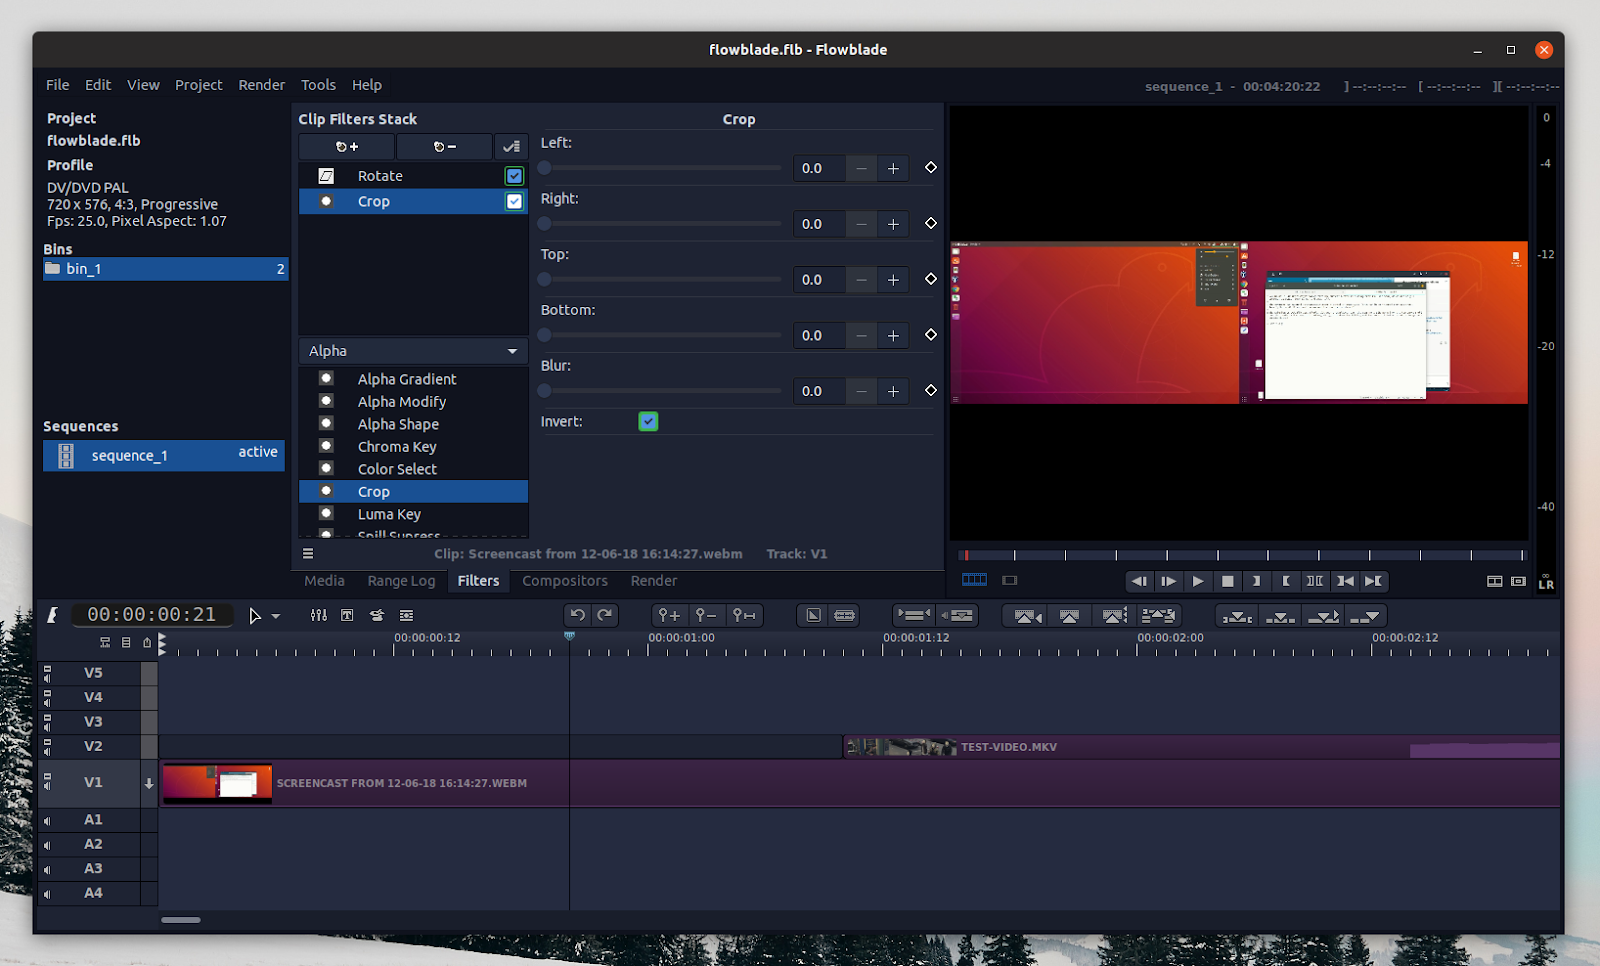 Free Linux Video Editor Flowblade 2 0 Released With